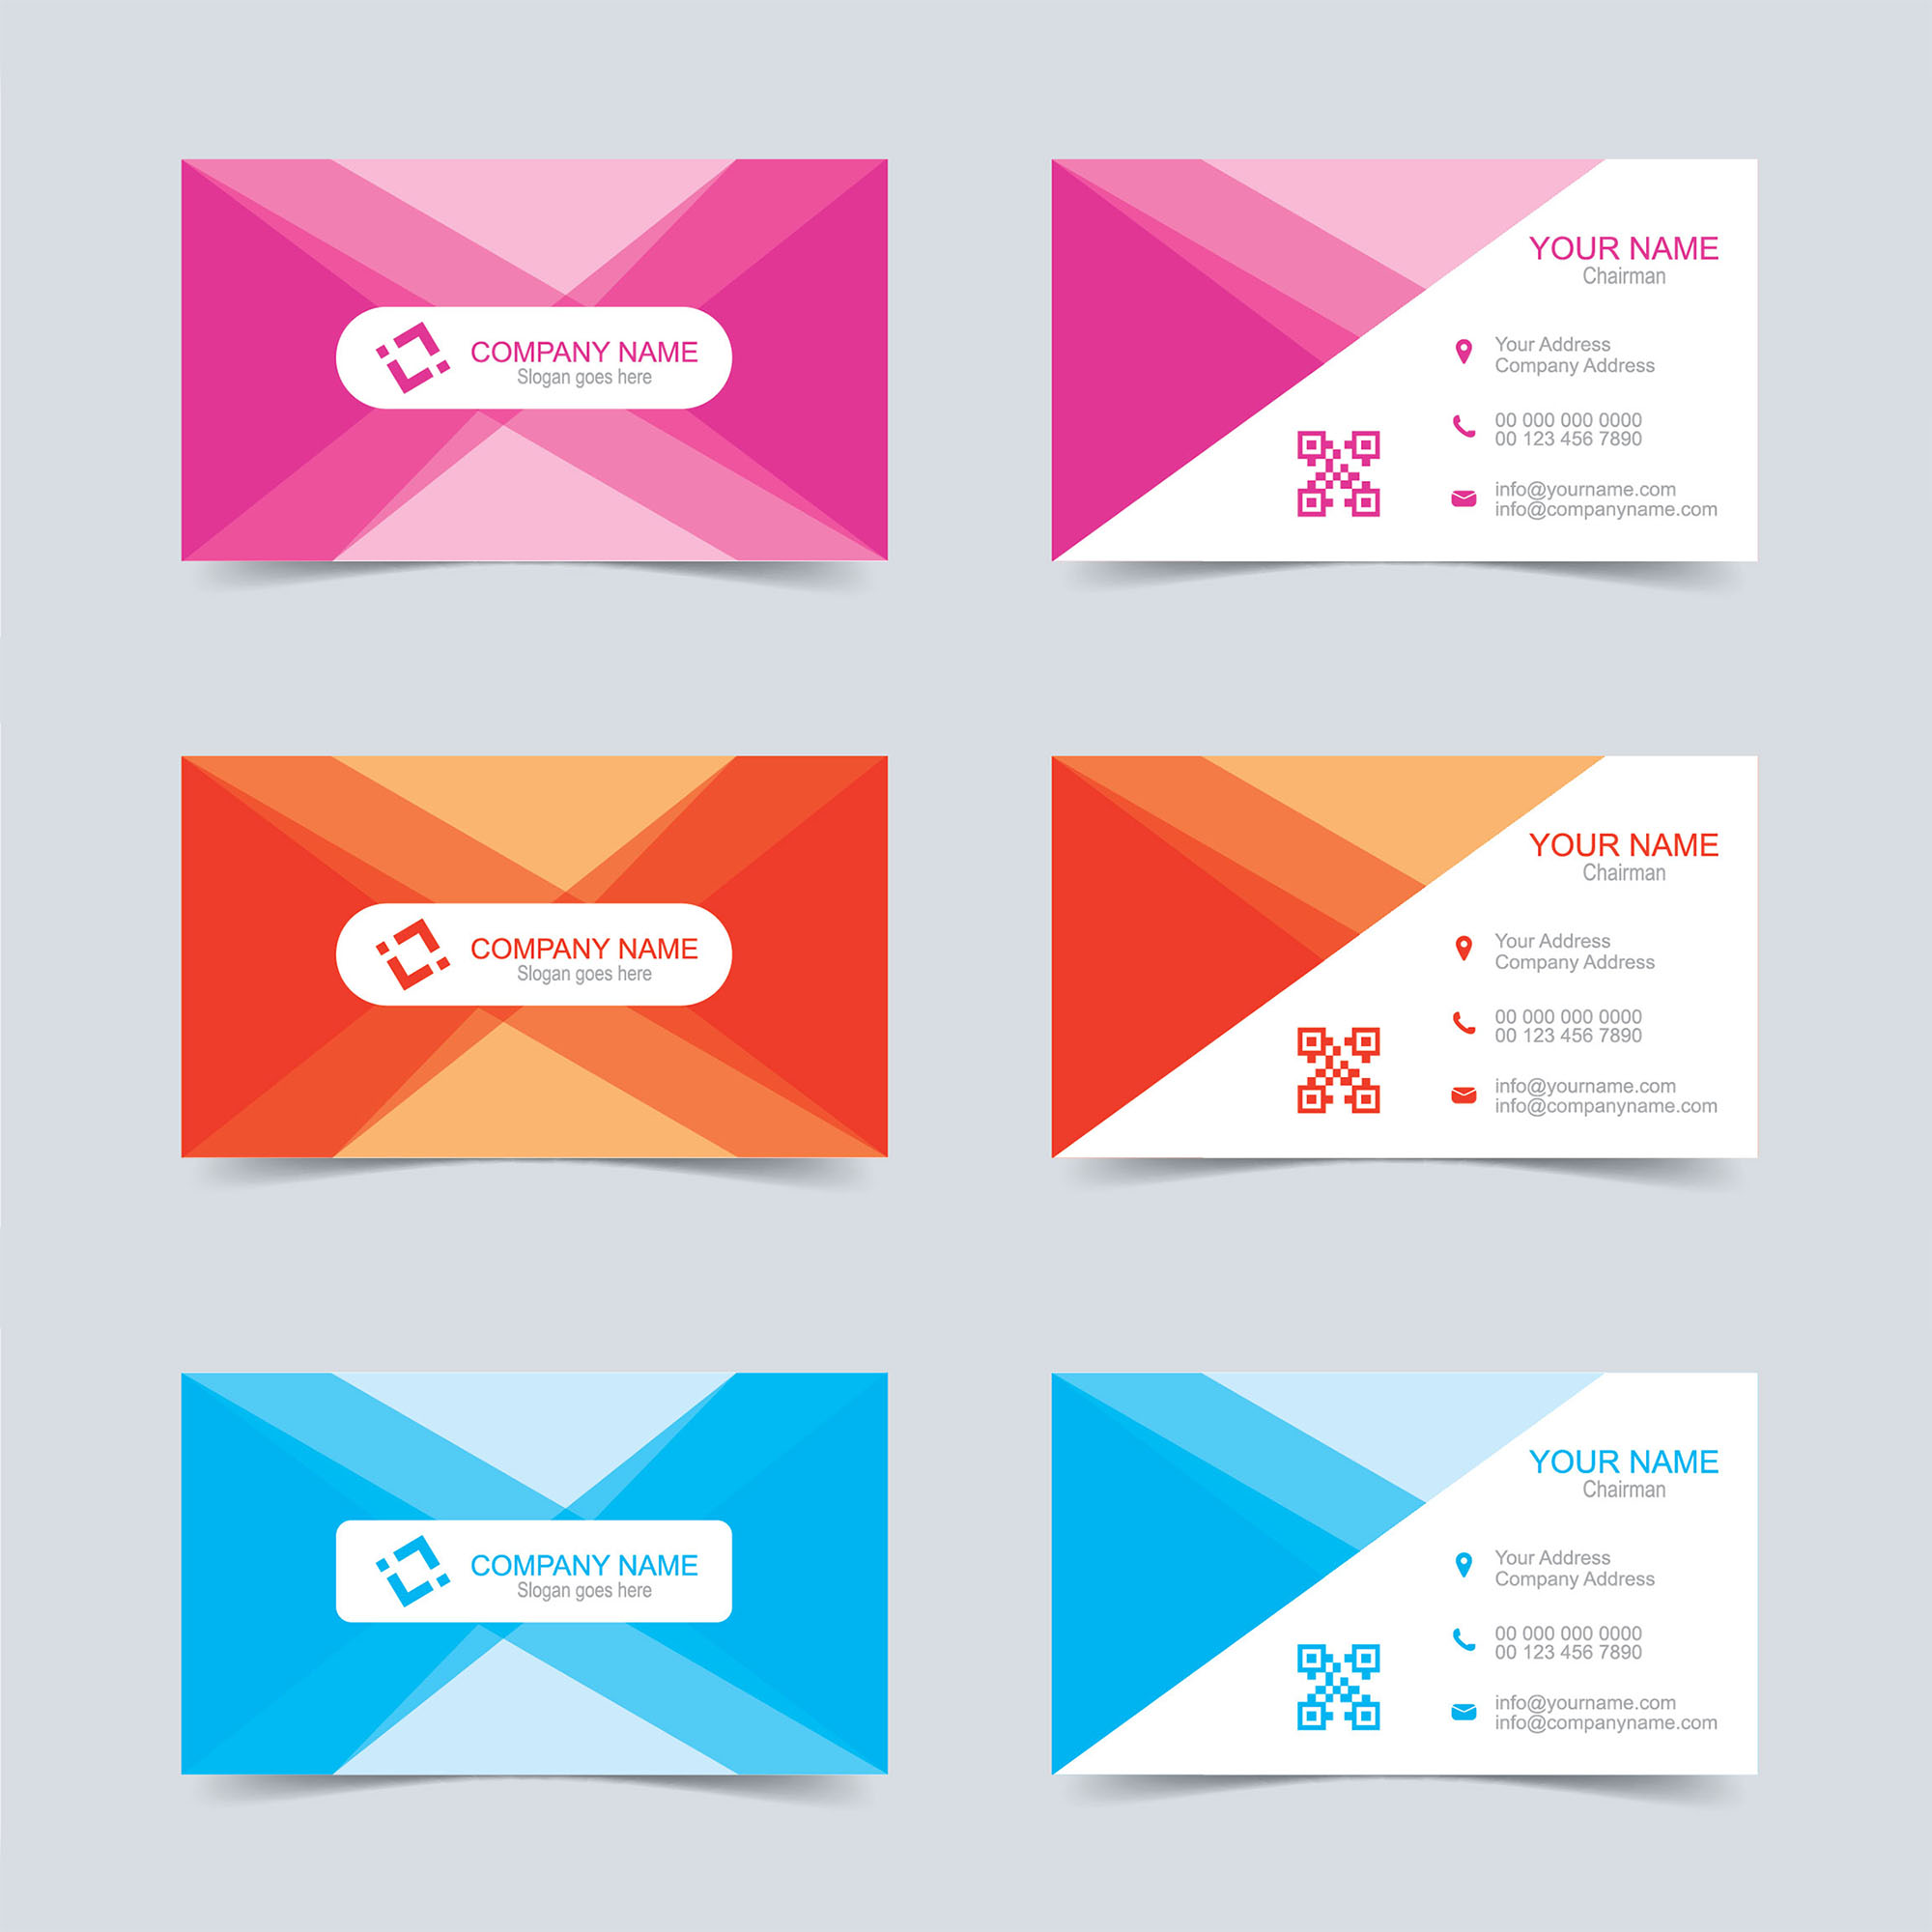 Vector Business Card Template Free Download Wisxicom - Business card design template free